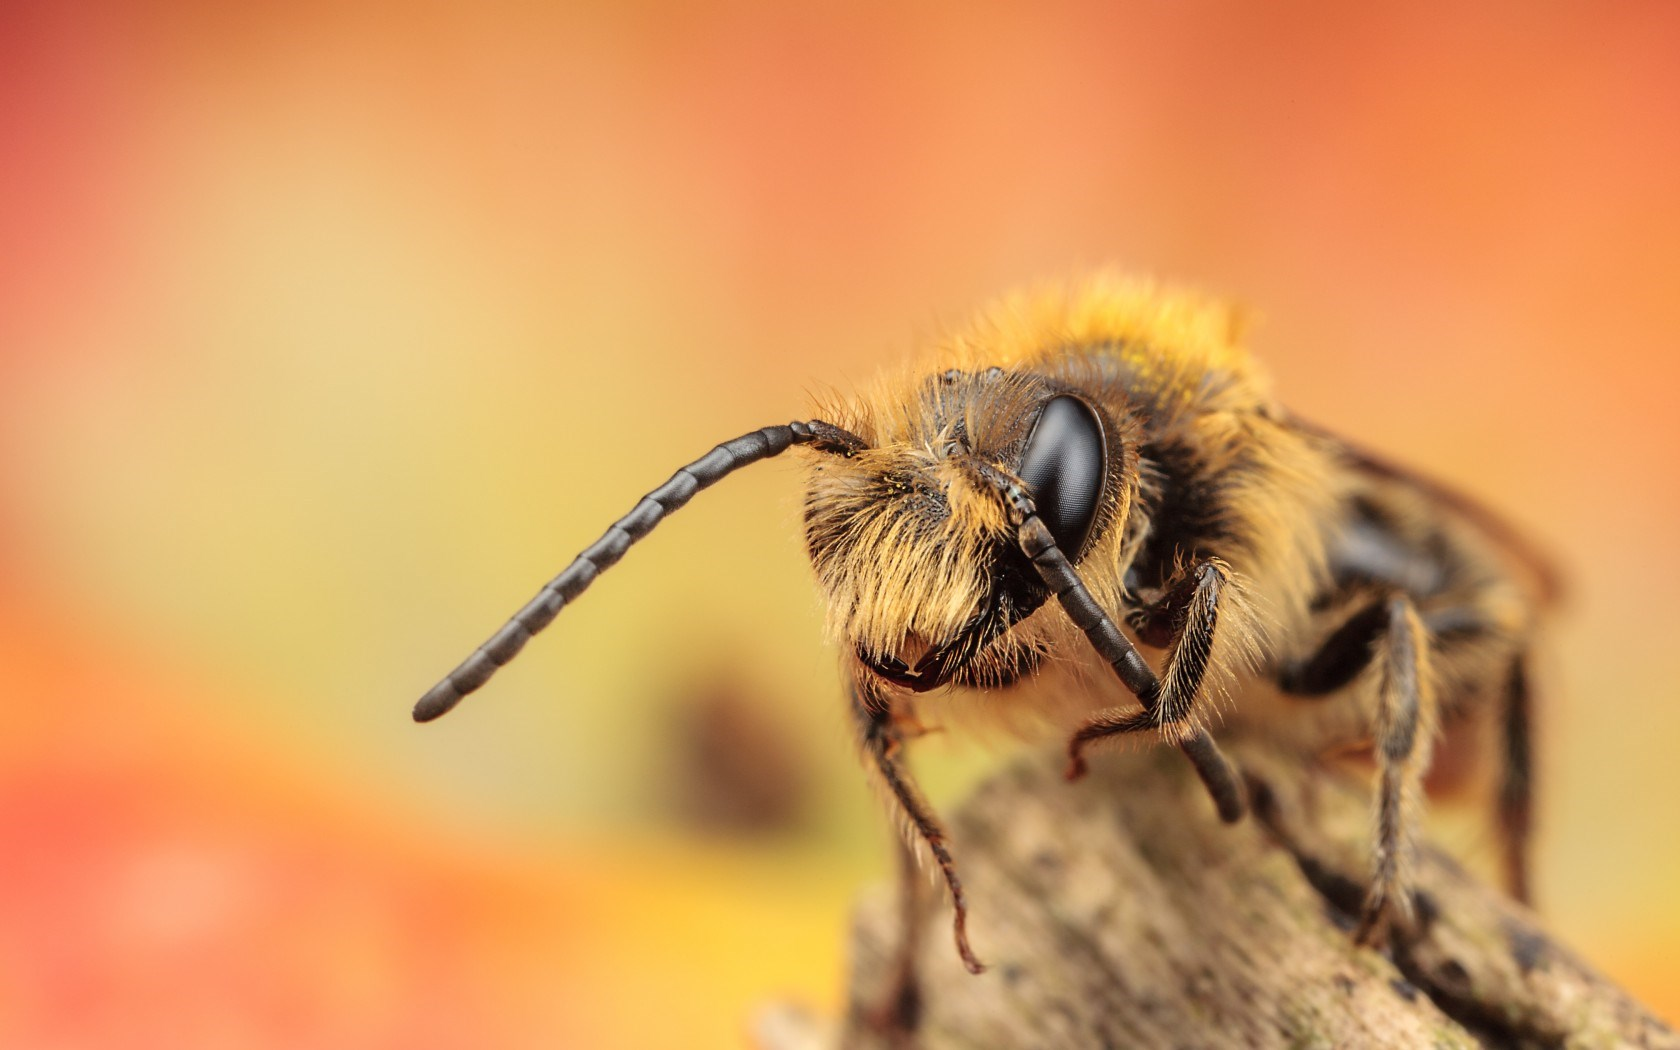 honey bee images